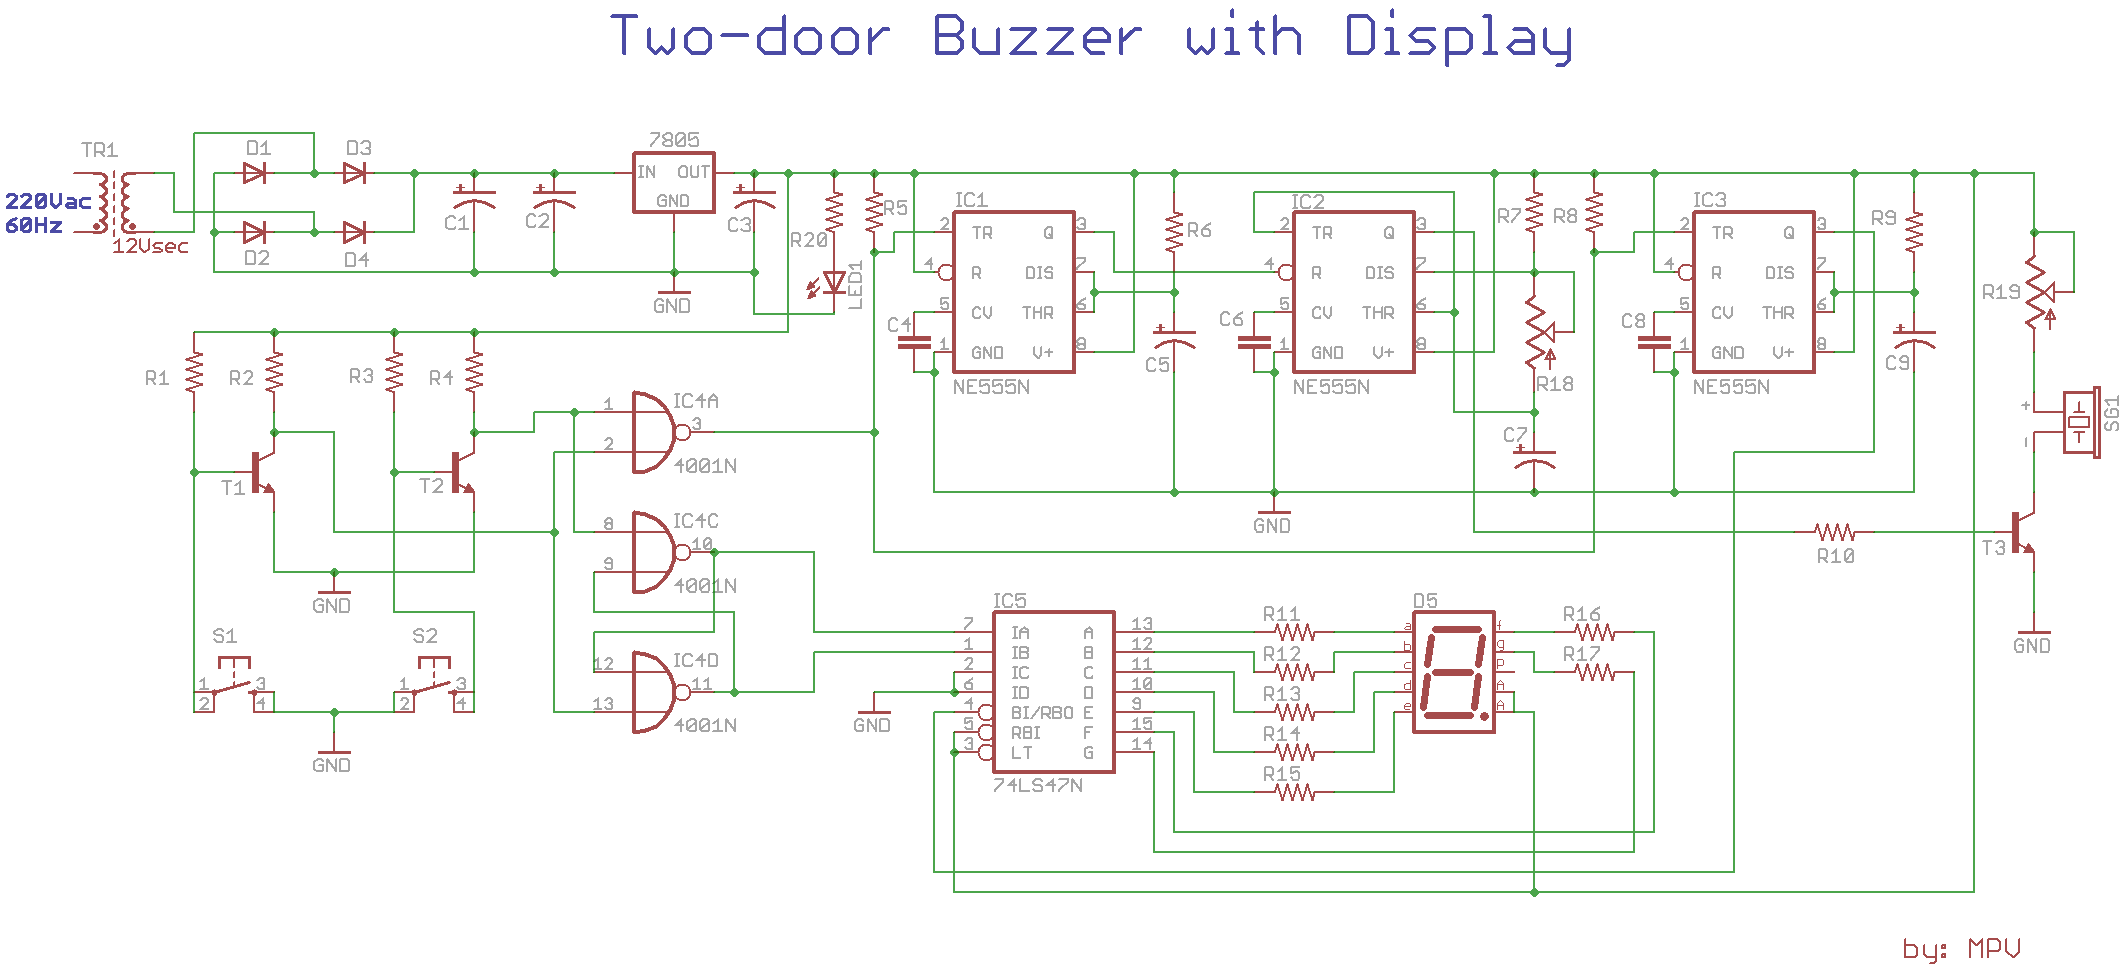 electronic bell circuit diagram silicon controlled rectifier wikipedia  hight resolution of two door buzzer with display inner buzzer circuit diagram electronic bell circuit diagram